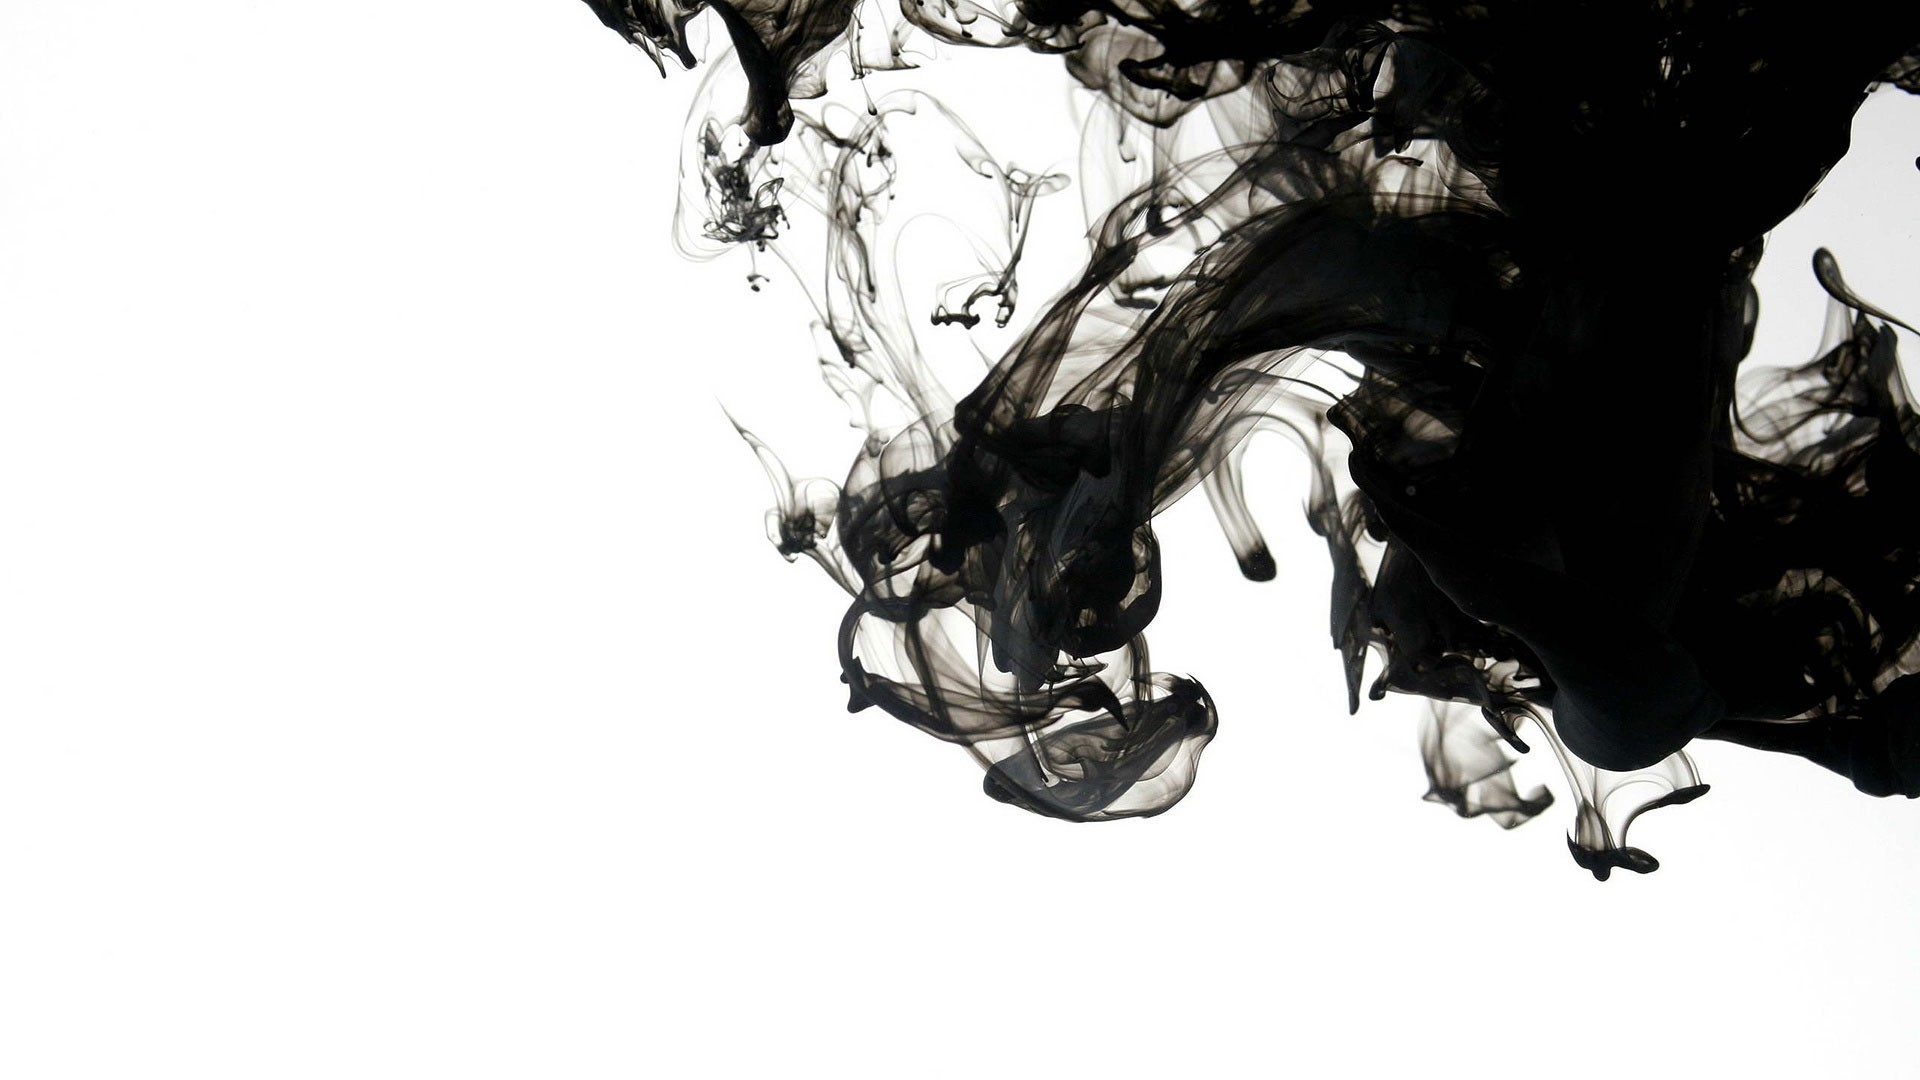 Res: 1920x1080, black white abstract wallpaper